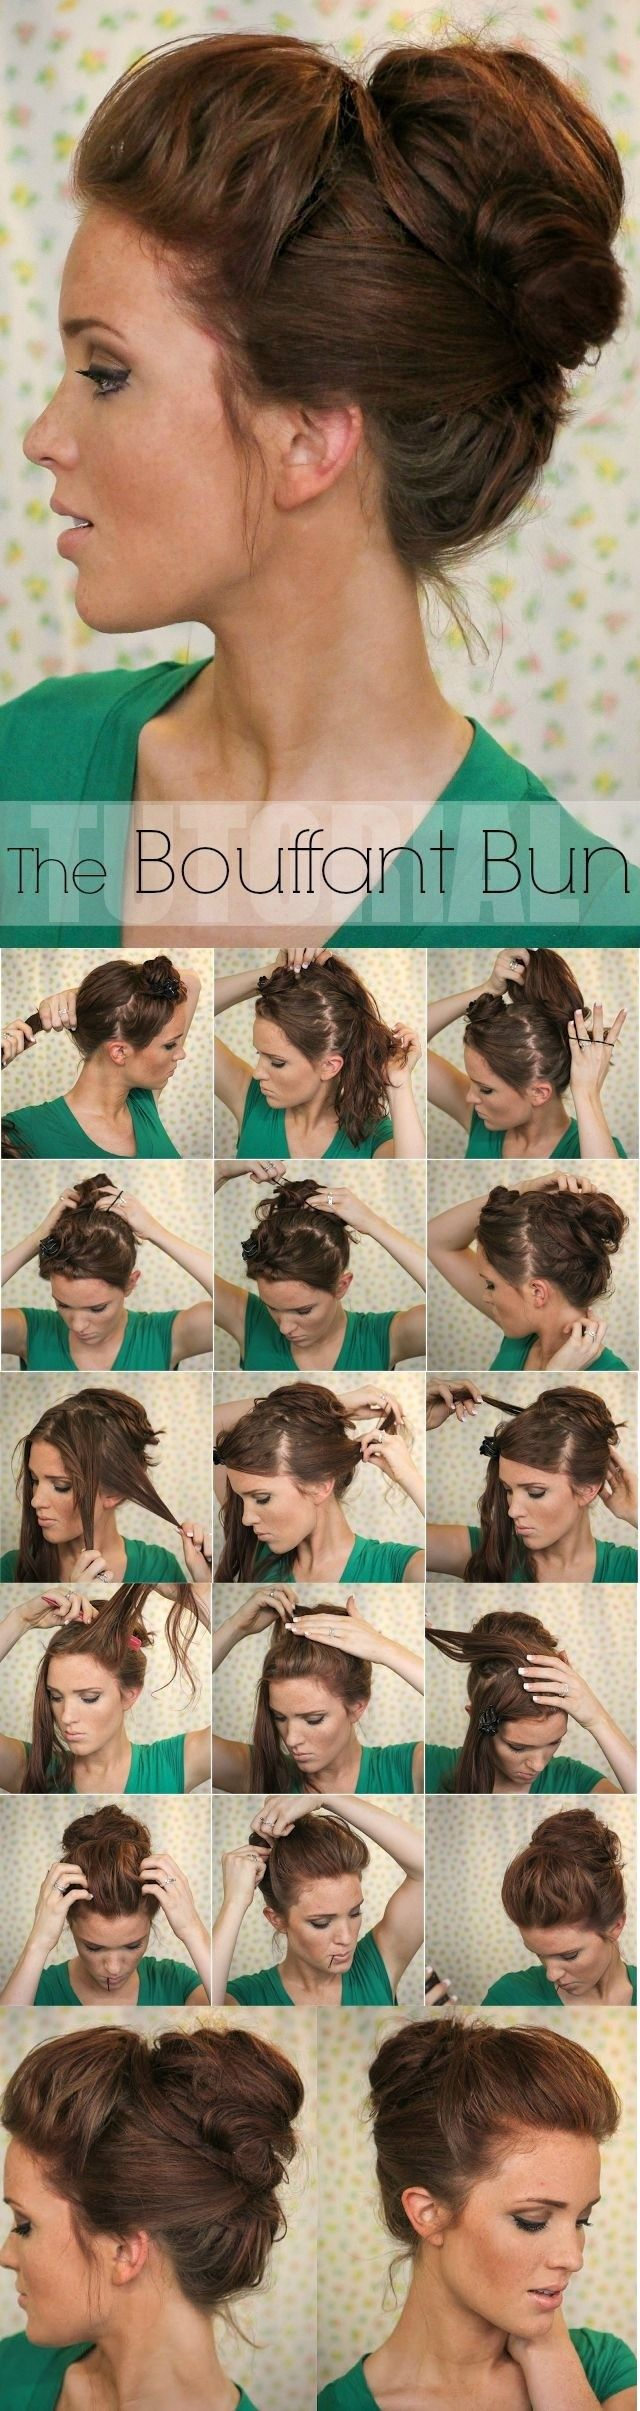 14 Totally Trendy Hair Bun Tutorials 0 - https://www.facebook.com/diplyofficial